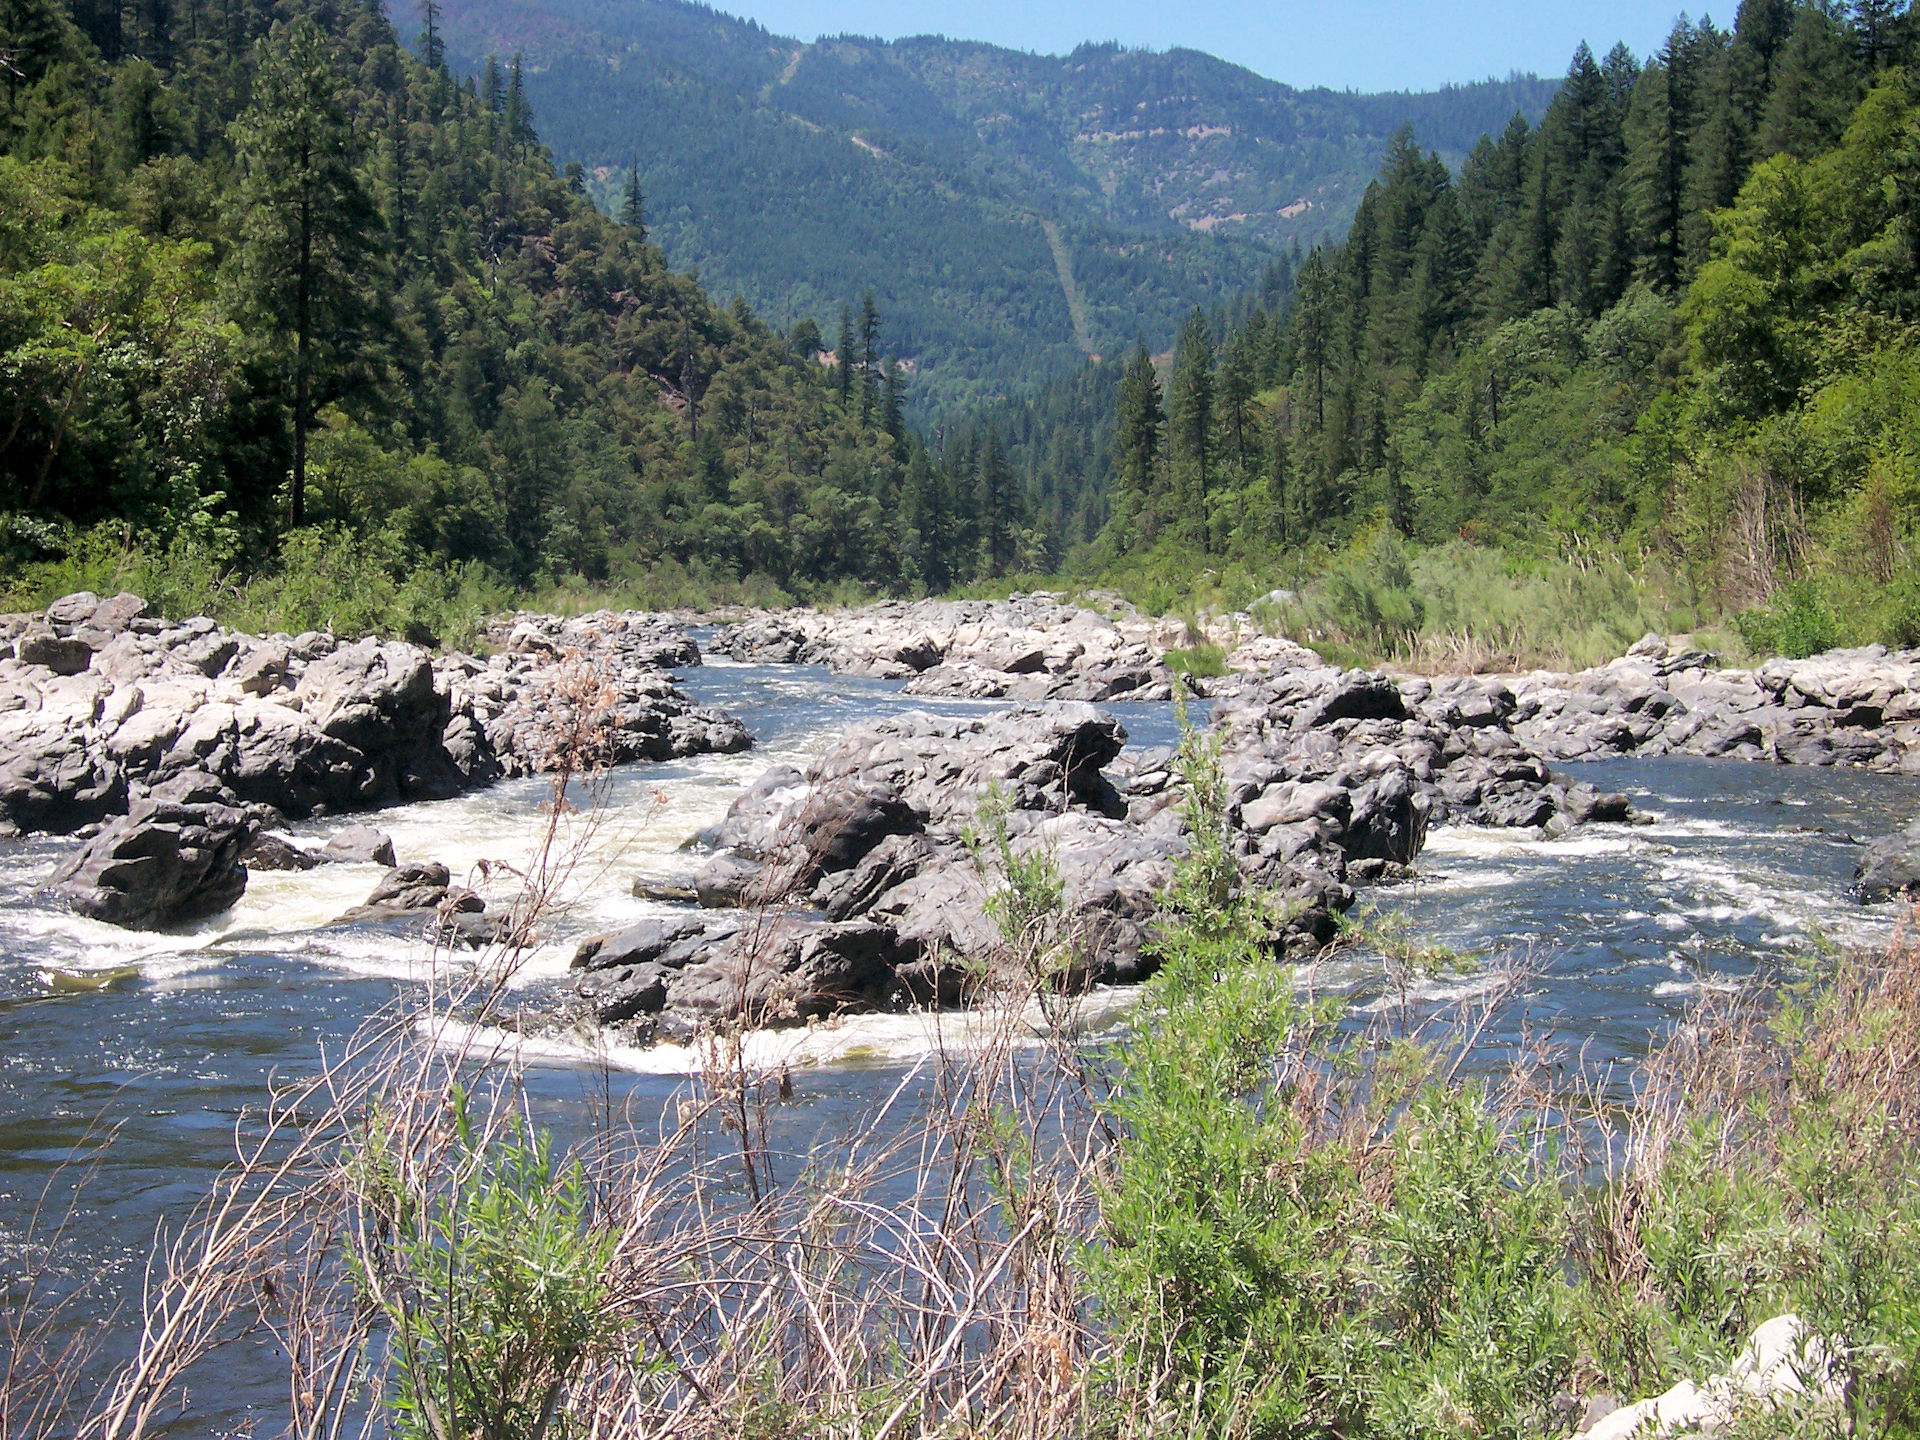 Klamath River, at Savage Rapids - 2006